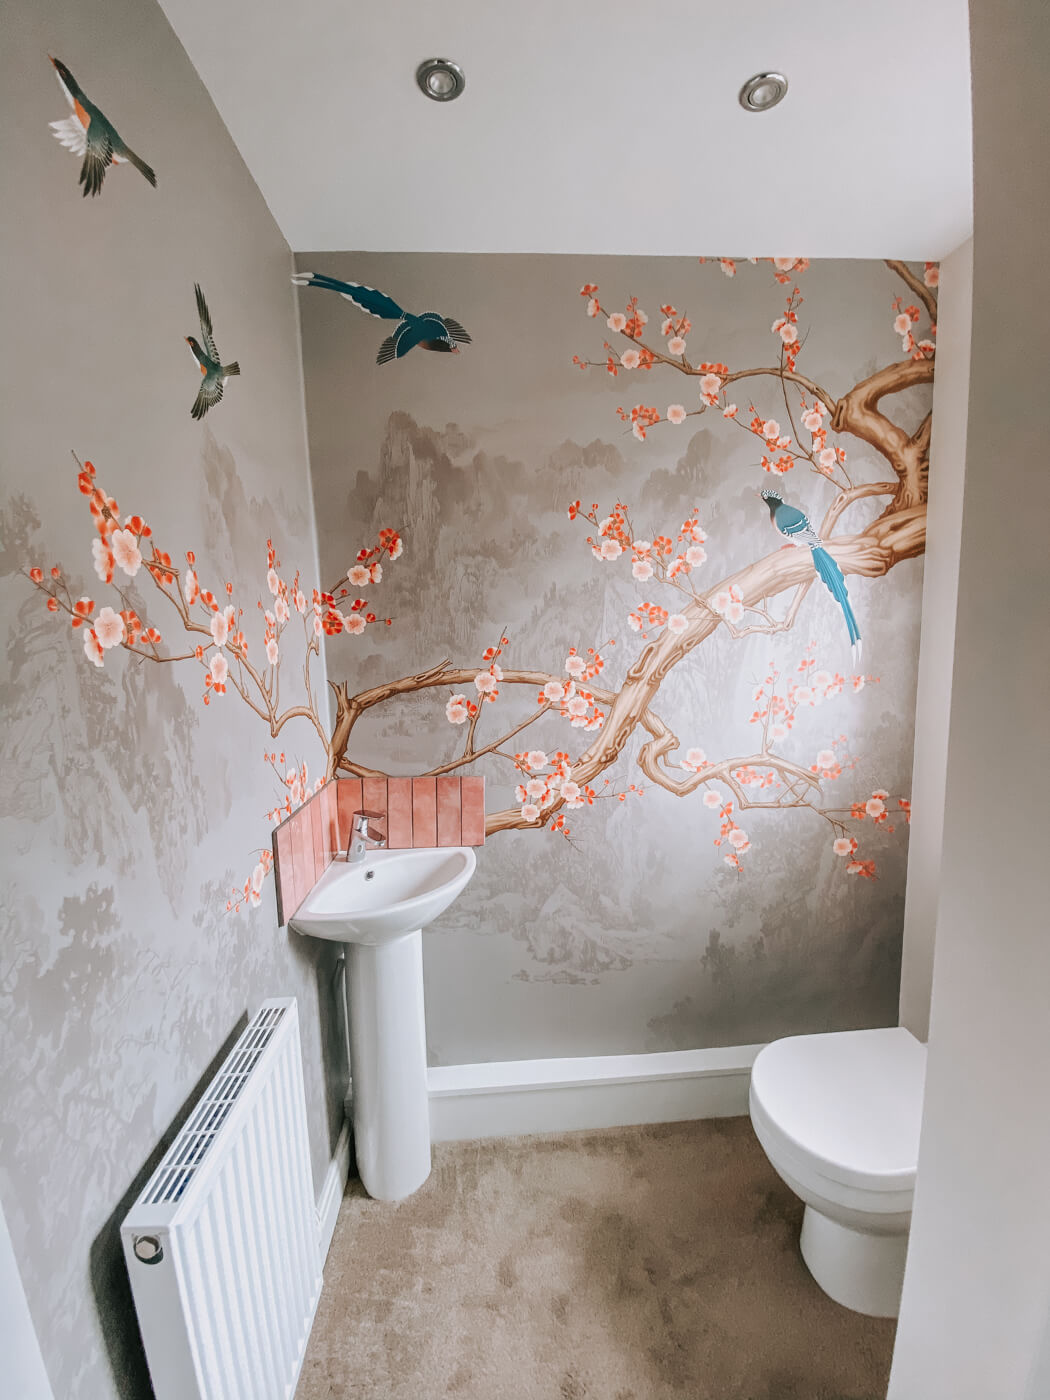 Photowall wallpaper Birds heights - Pearly insitu within my downstairs cloackroom